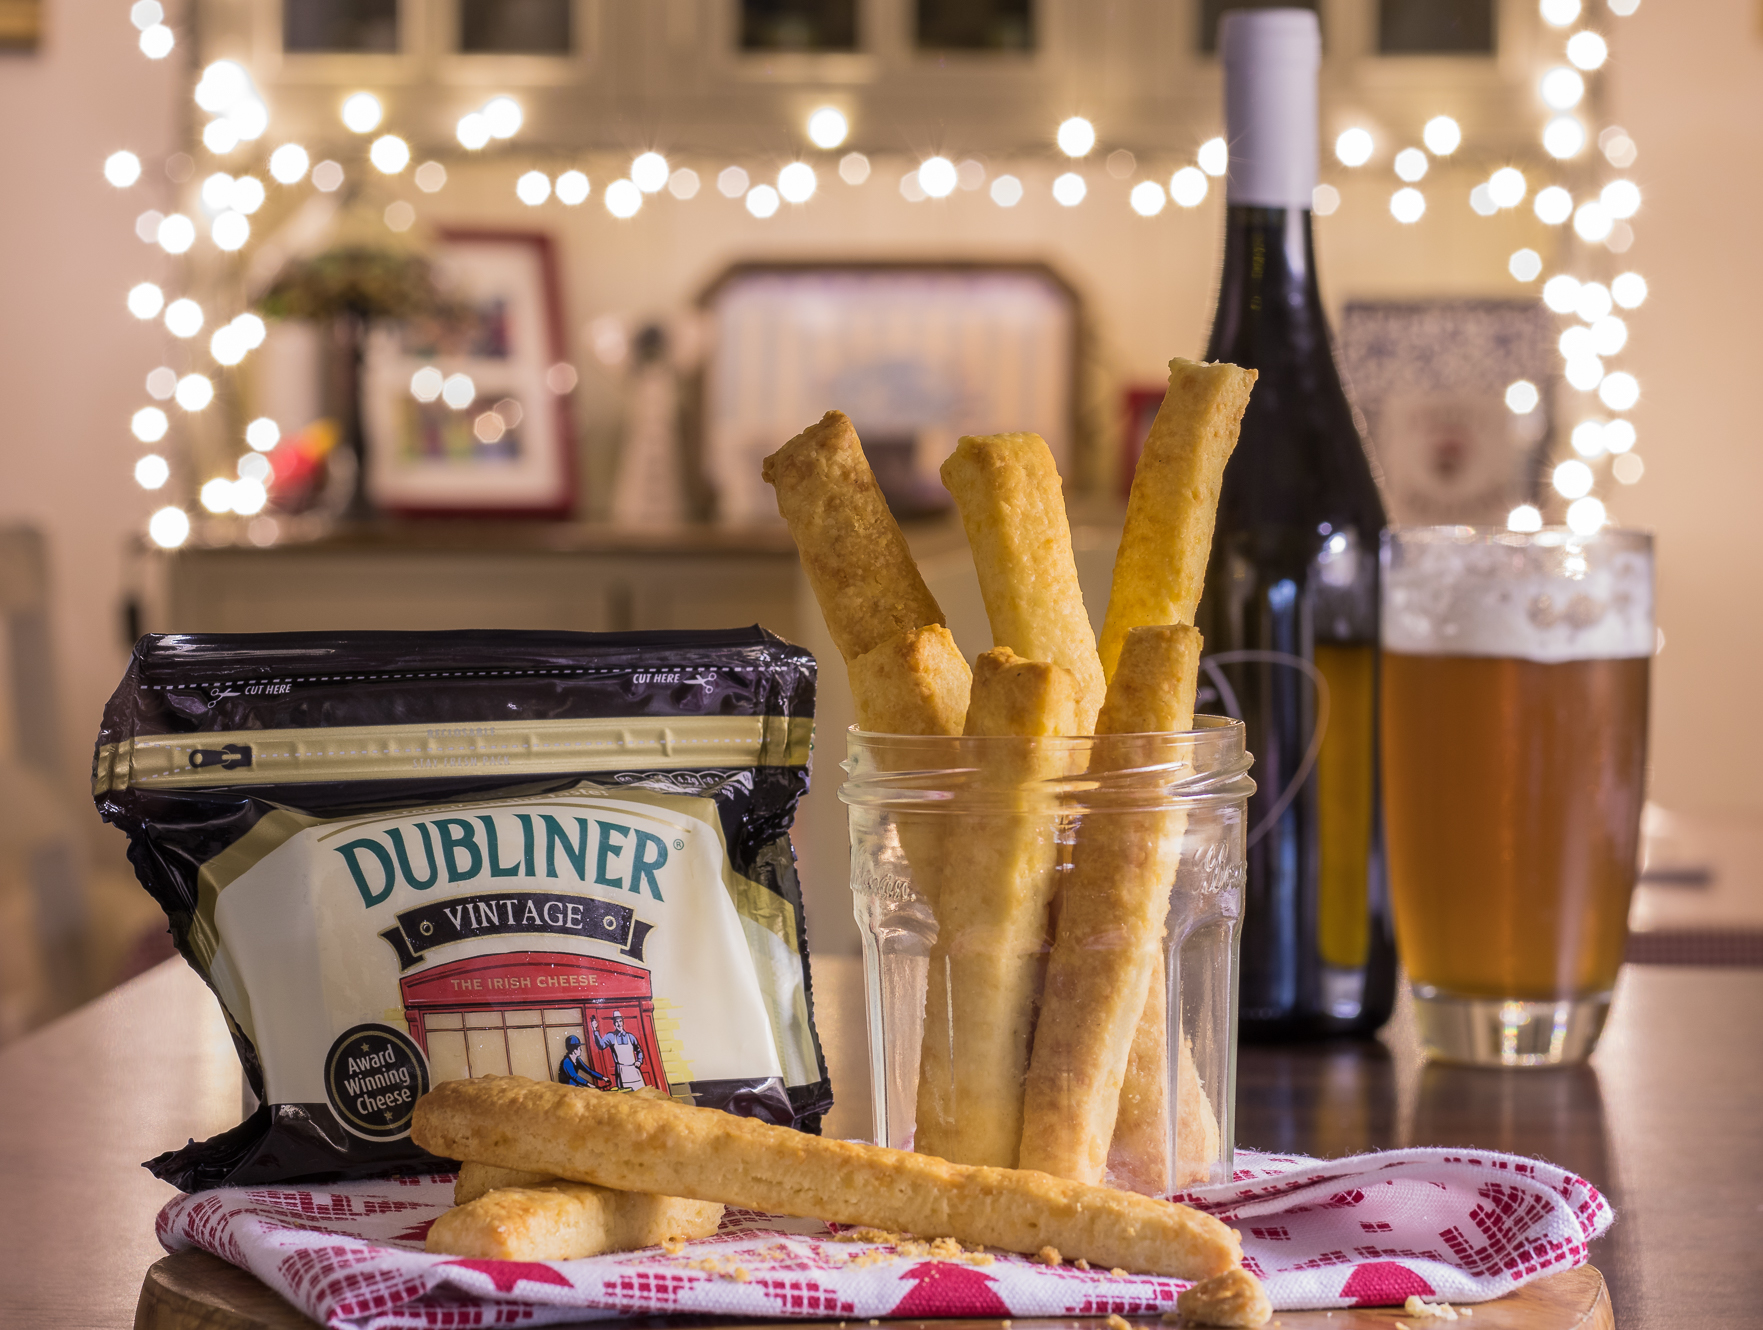 Saucepan Kids make Cheese Straws with Dubliner Vintage Cheese for the perfect festive savoury snack